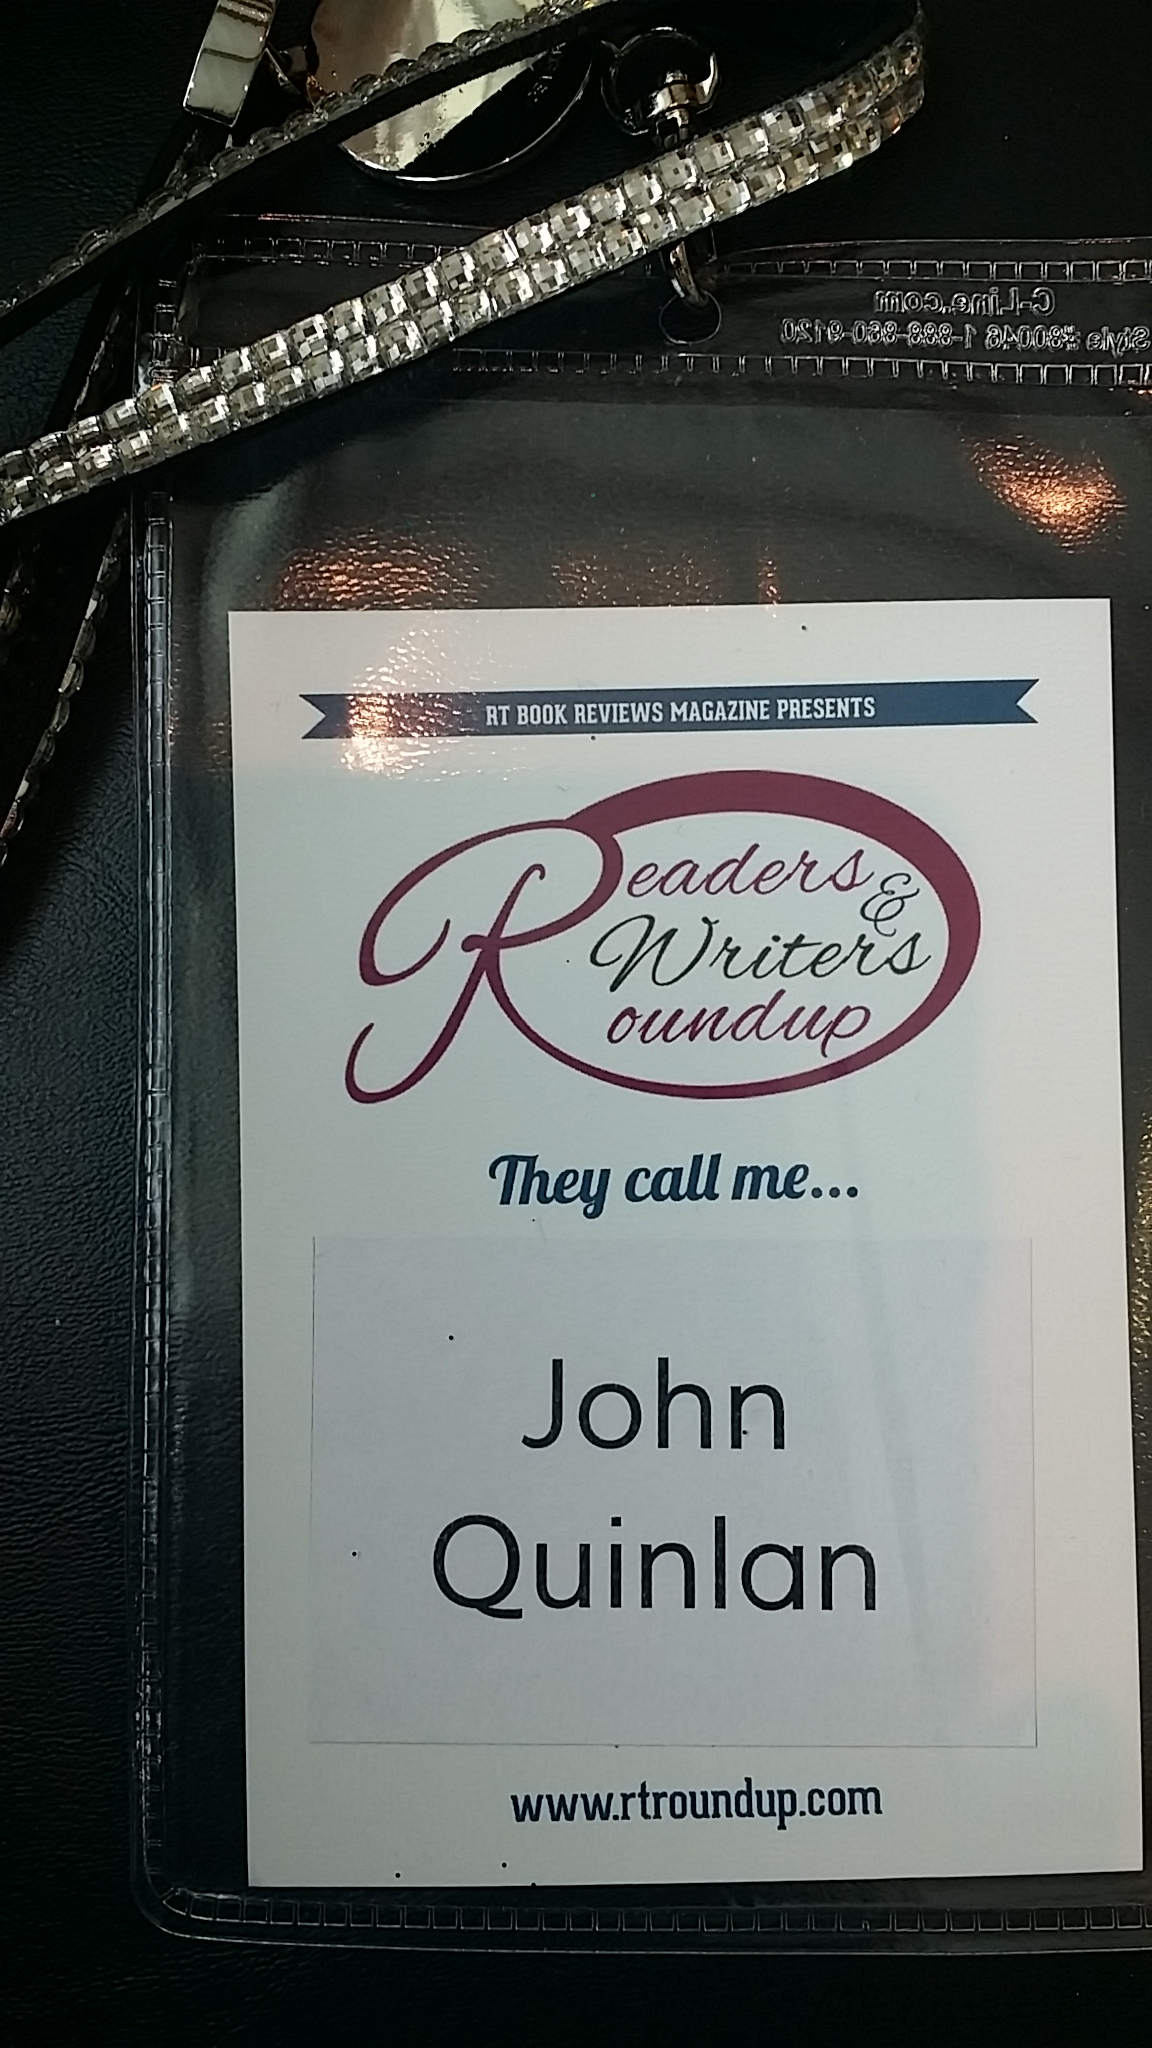 John Joseph Quinlan 2015 RT Convention Romance Readers & Writers Roundup Featured Cover Model Man #JohnQuinlan